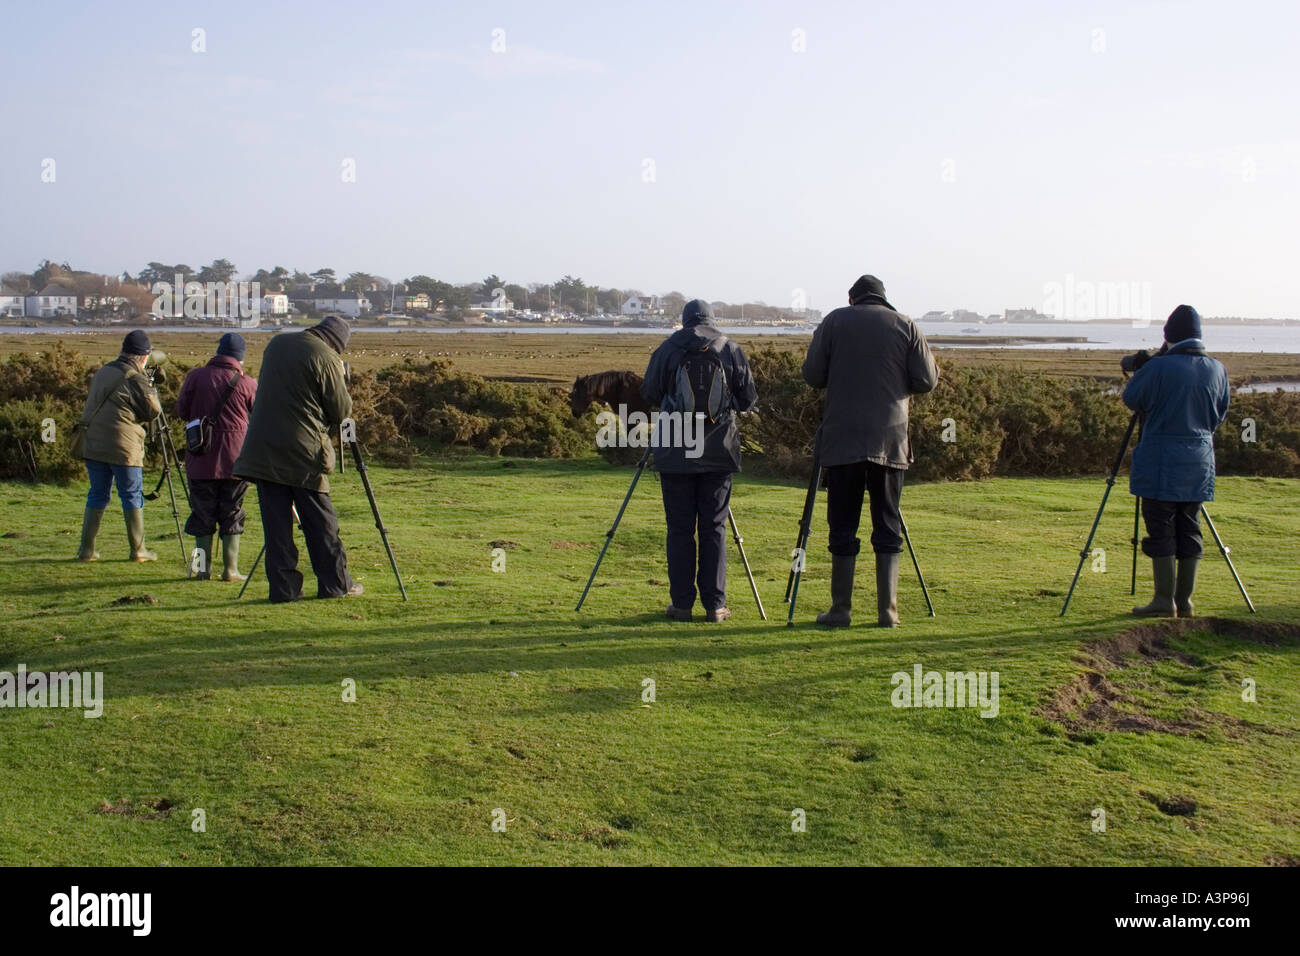 Bird Watchers at Stanpit Nature Reserve, Christchurch Harbour/Harbor, Dorset, UK - Stock Image